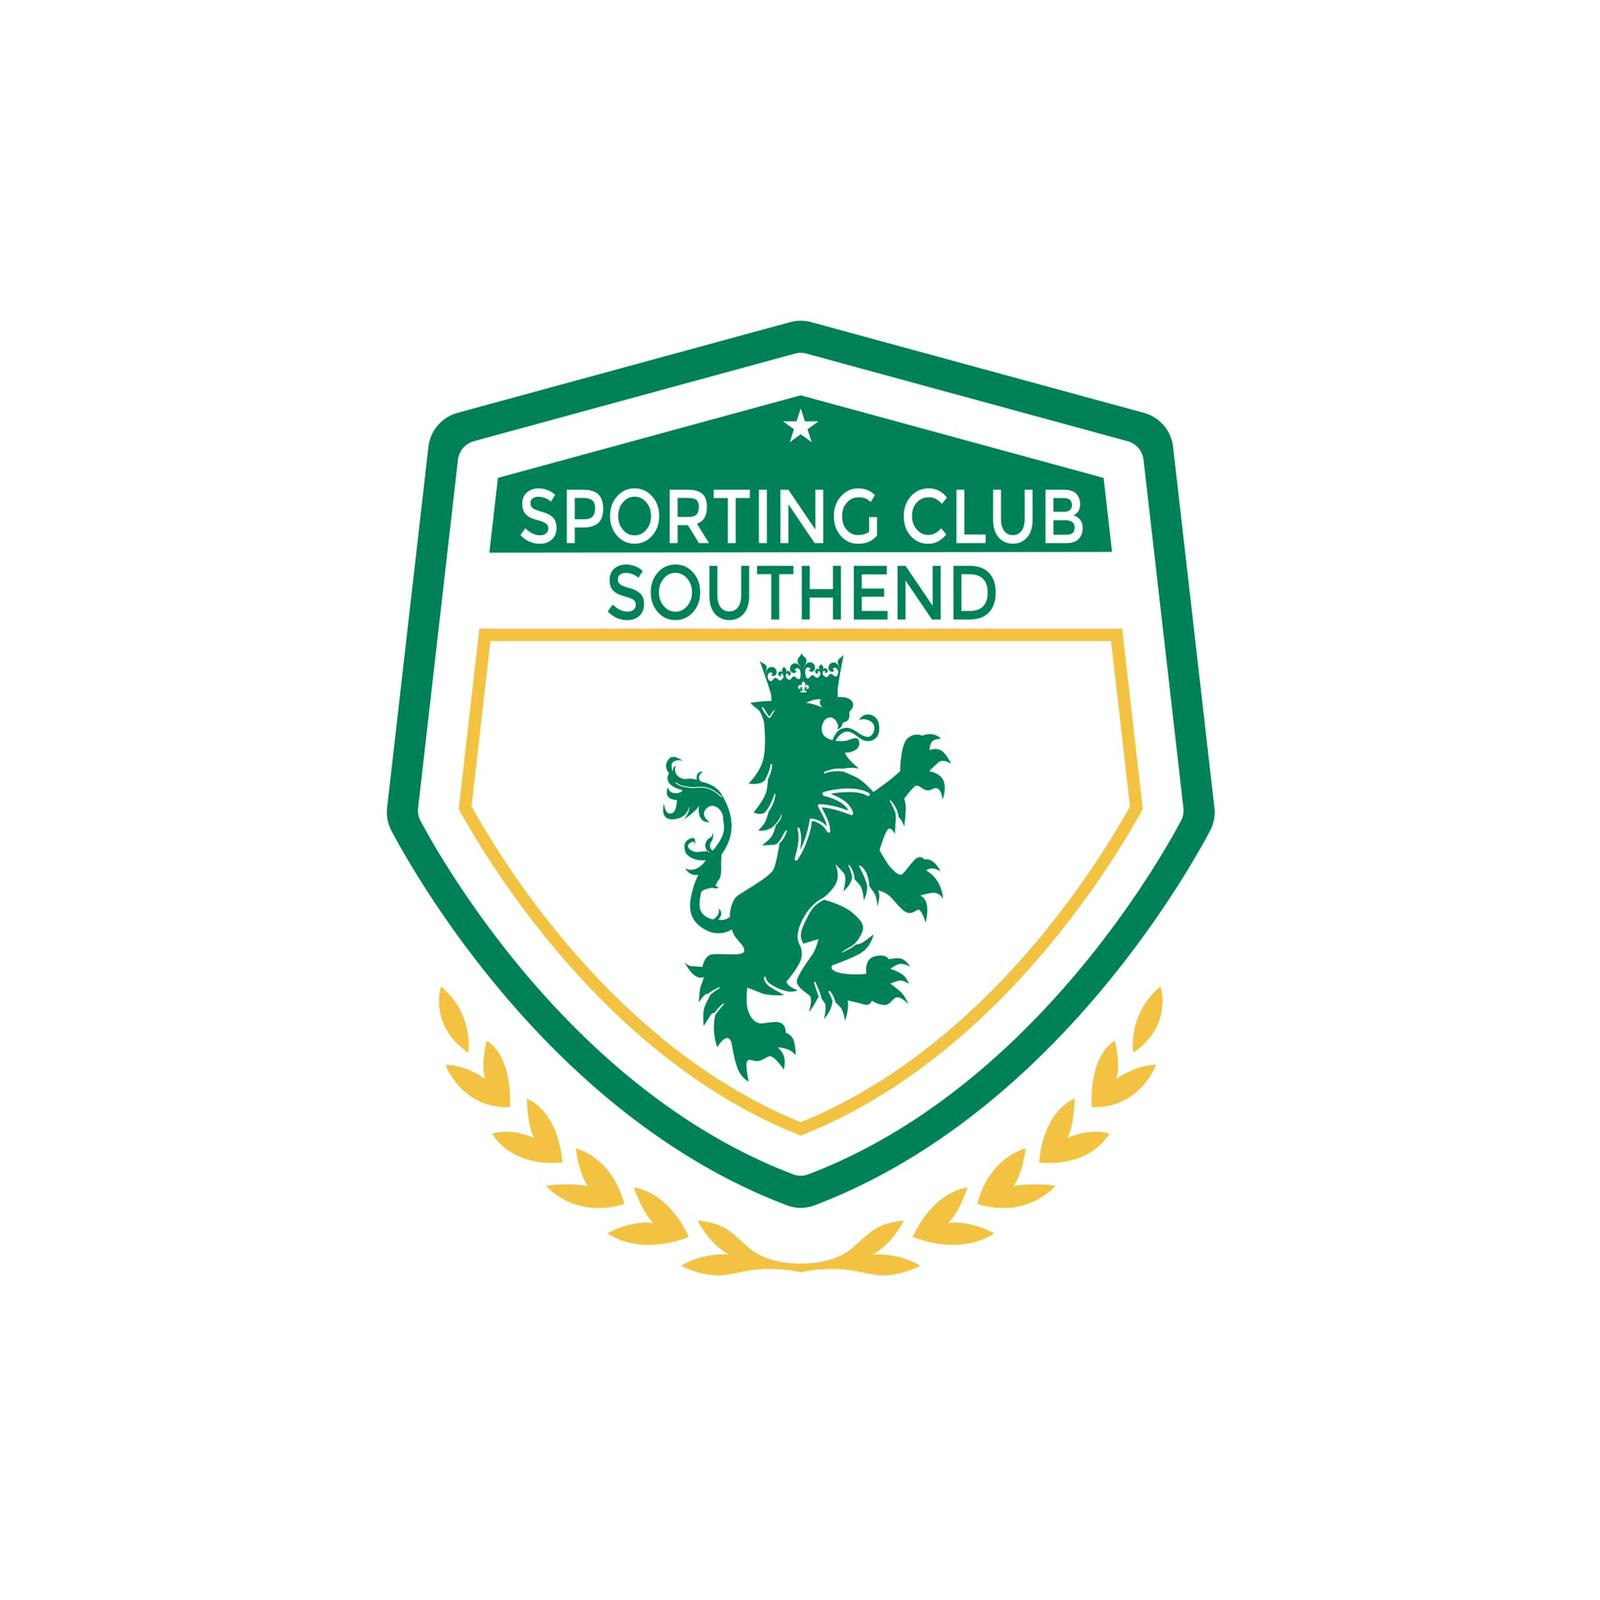 Sporting Club Southend